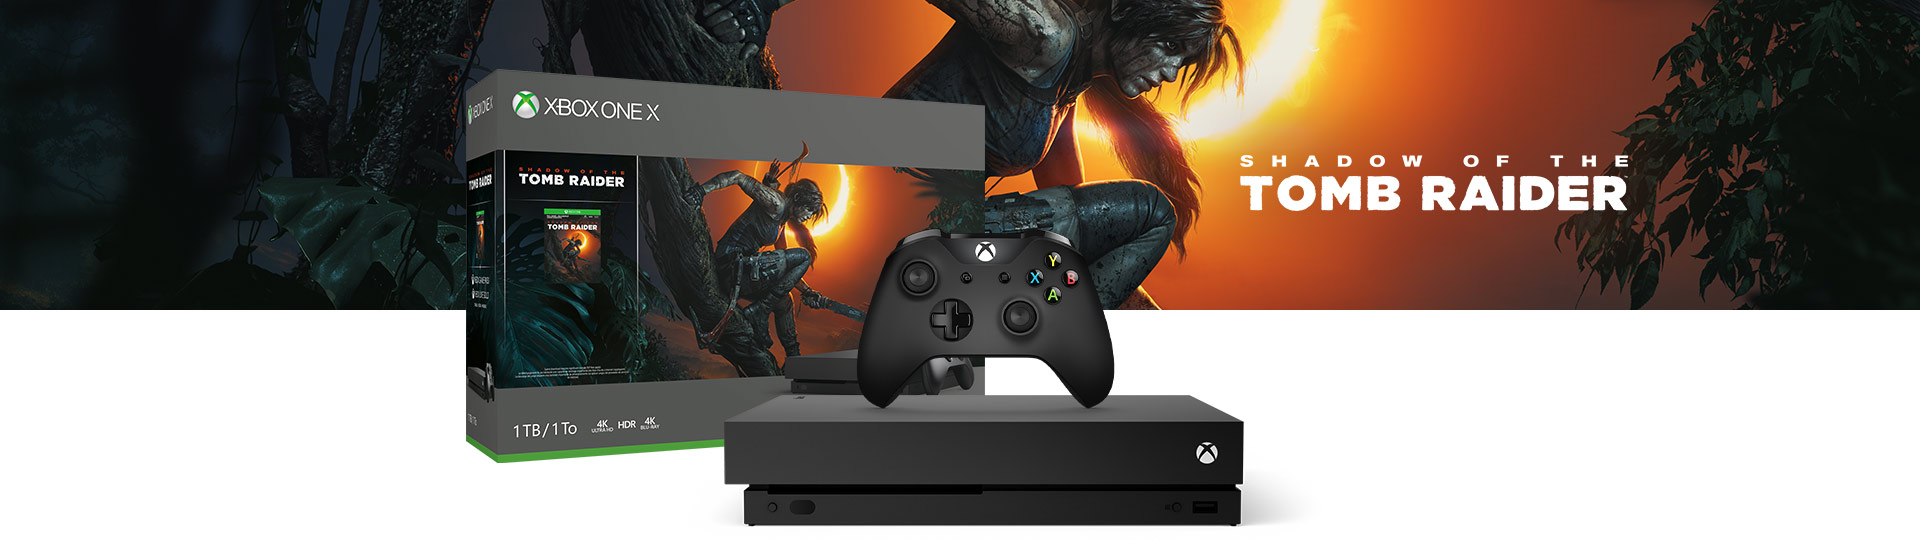 Xbox One X und Controller neben der Produktbox des Xbox One X Shadow of the Tomb Raider V 1 Terabyte-Bundles